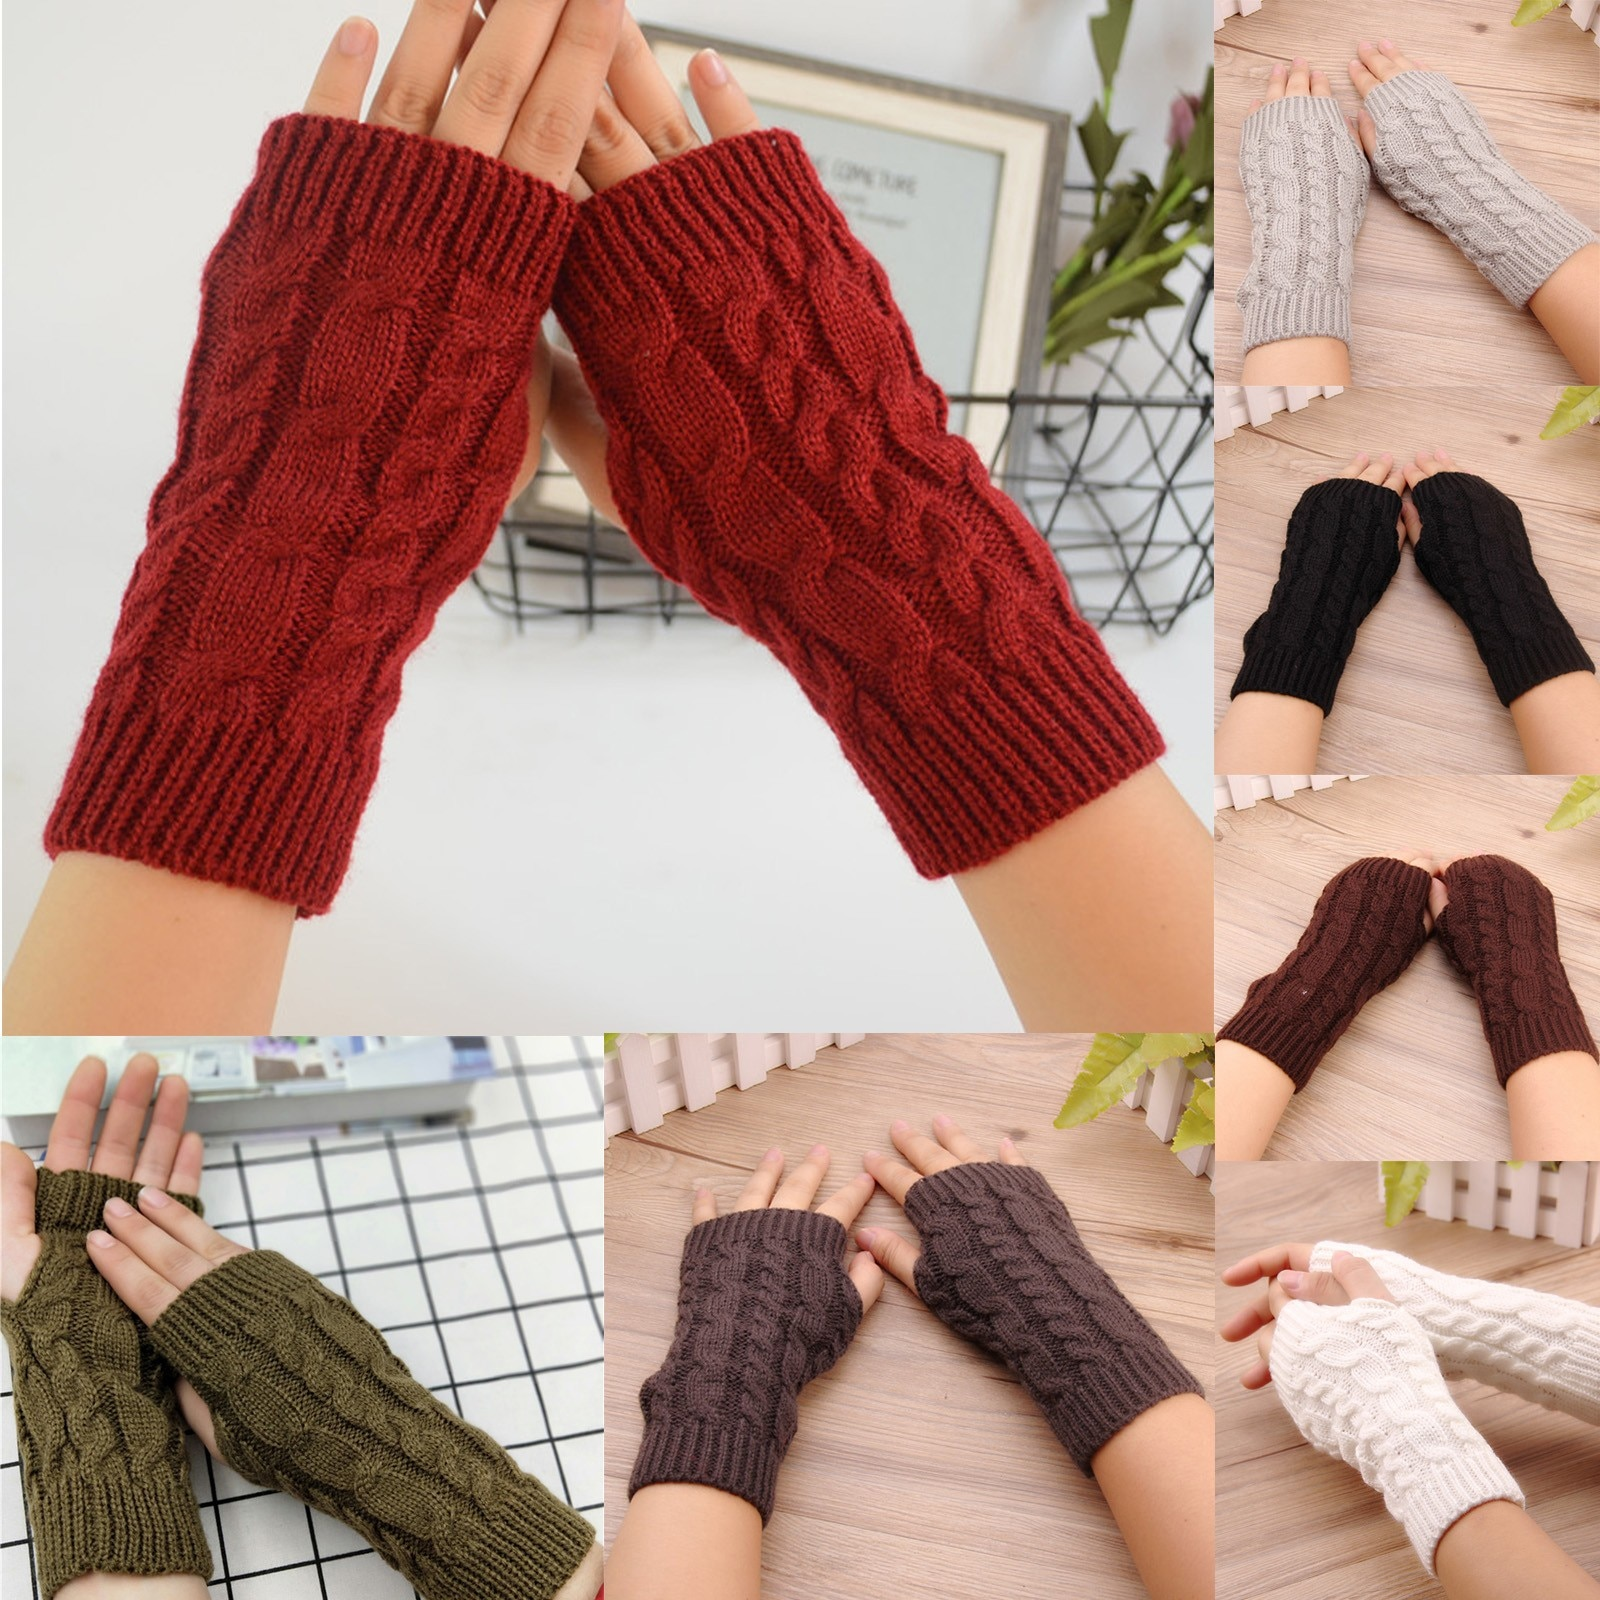 2020 New Women's Fingerless Gloves Stretch Knitted Keep Warm Winter Fashion Ladies Solid Gloves Ridi